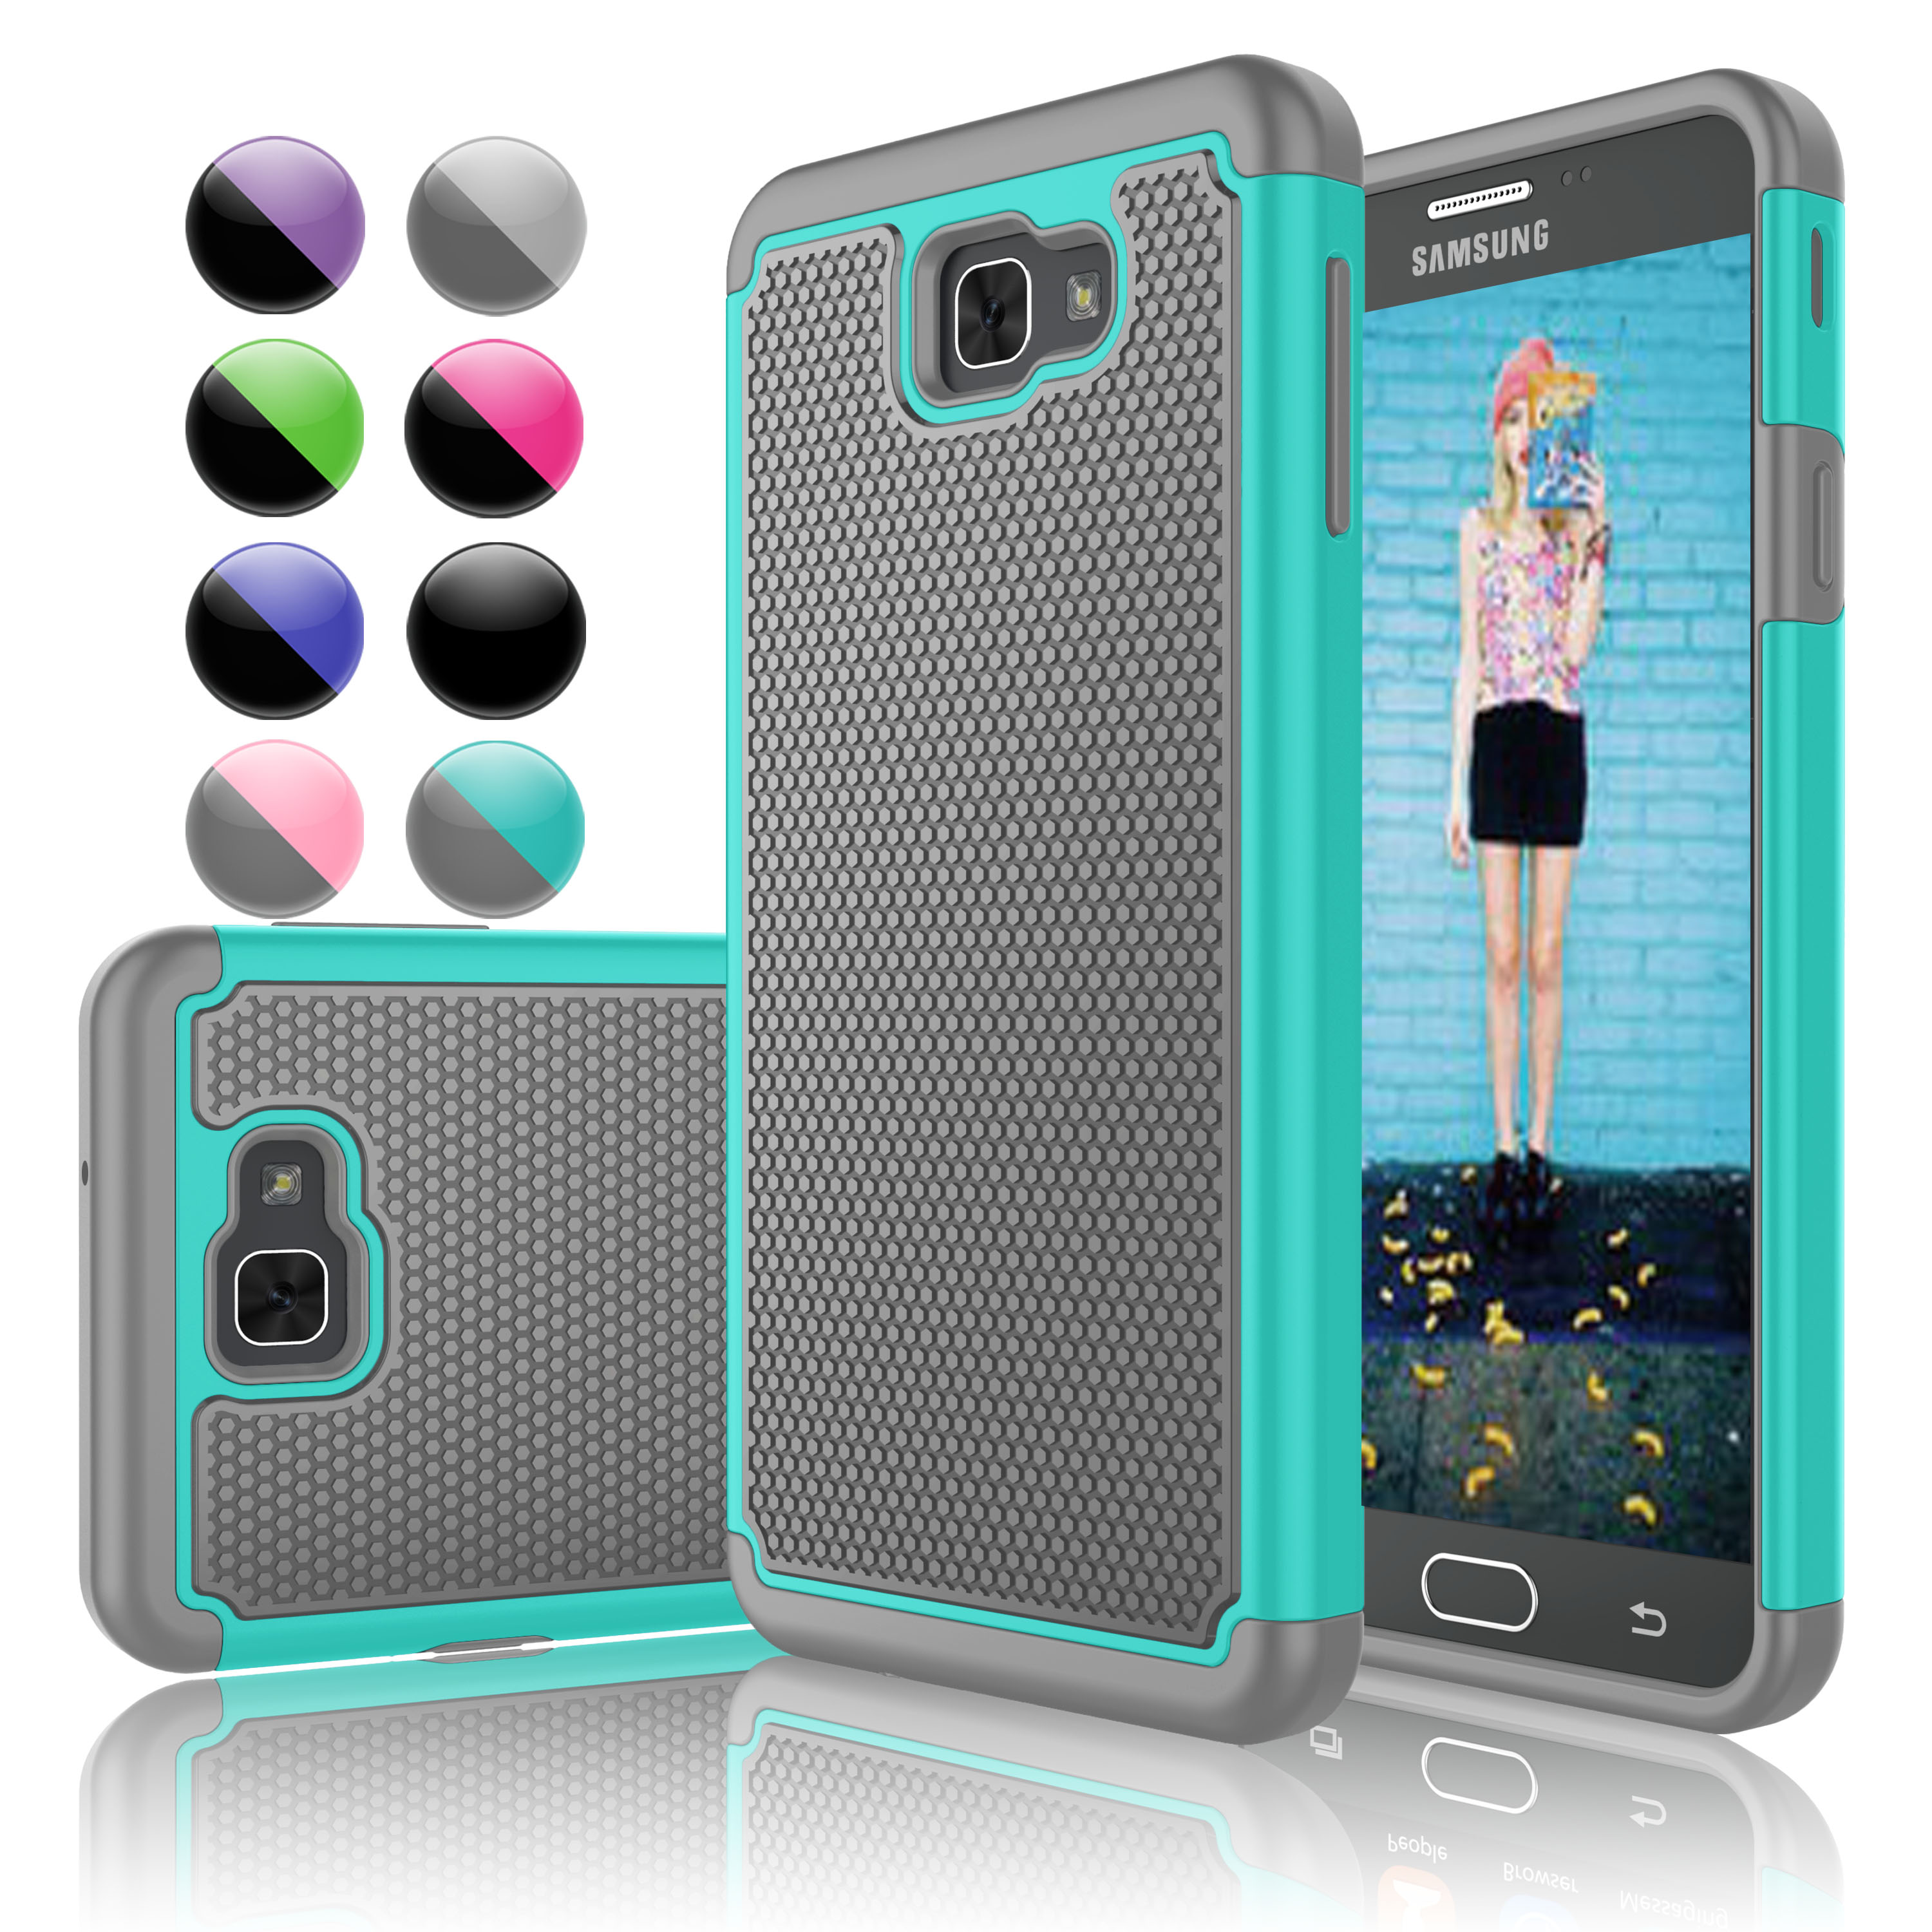 Galaxy Halo Case,Galaxy J7 Perx Case,Galaxy J7 Sky Pro Case, Njjex [Turquoise] Shock Absorbing Plastic Scratch Resistant Hard Cover Cases For Samsung Galaxy J7 V / J7V / J7 2017